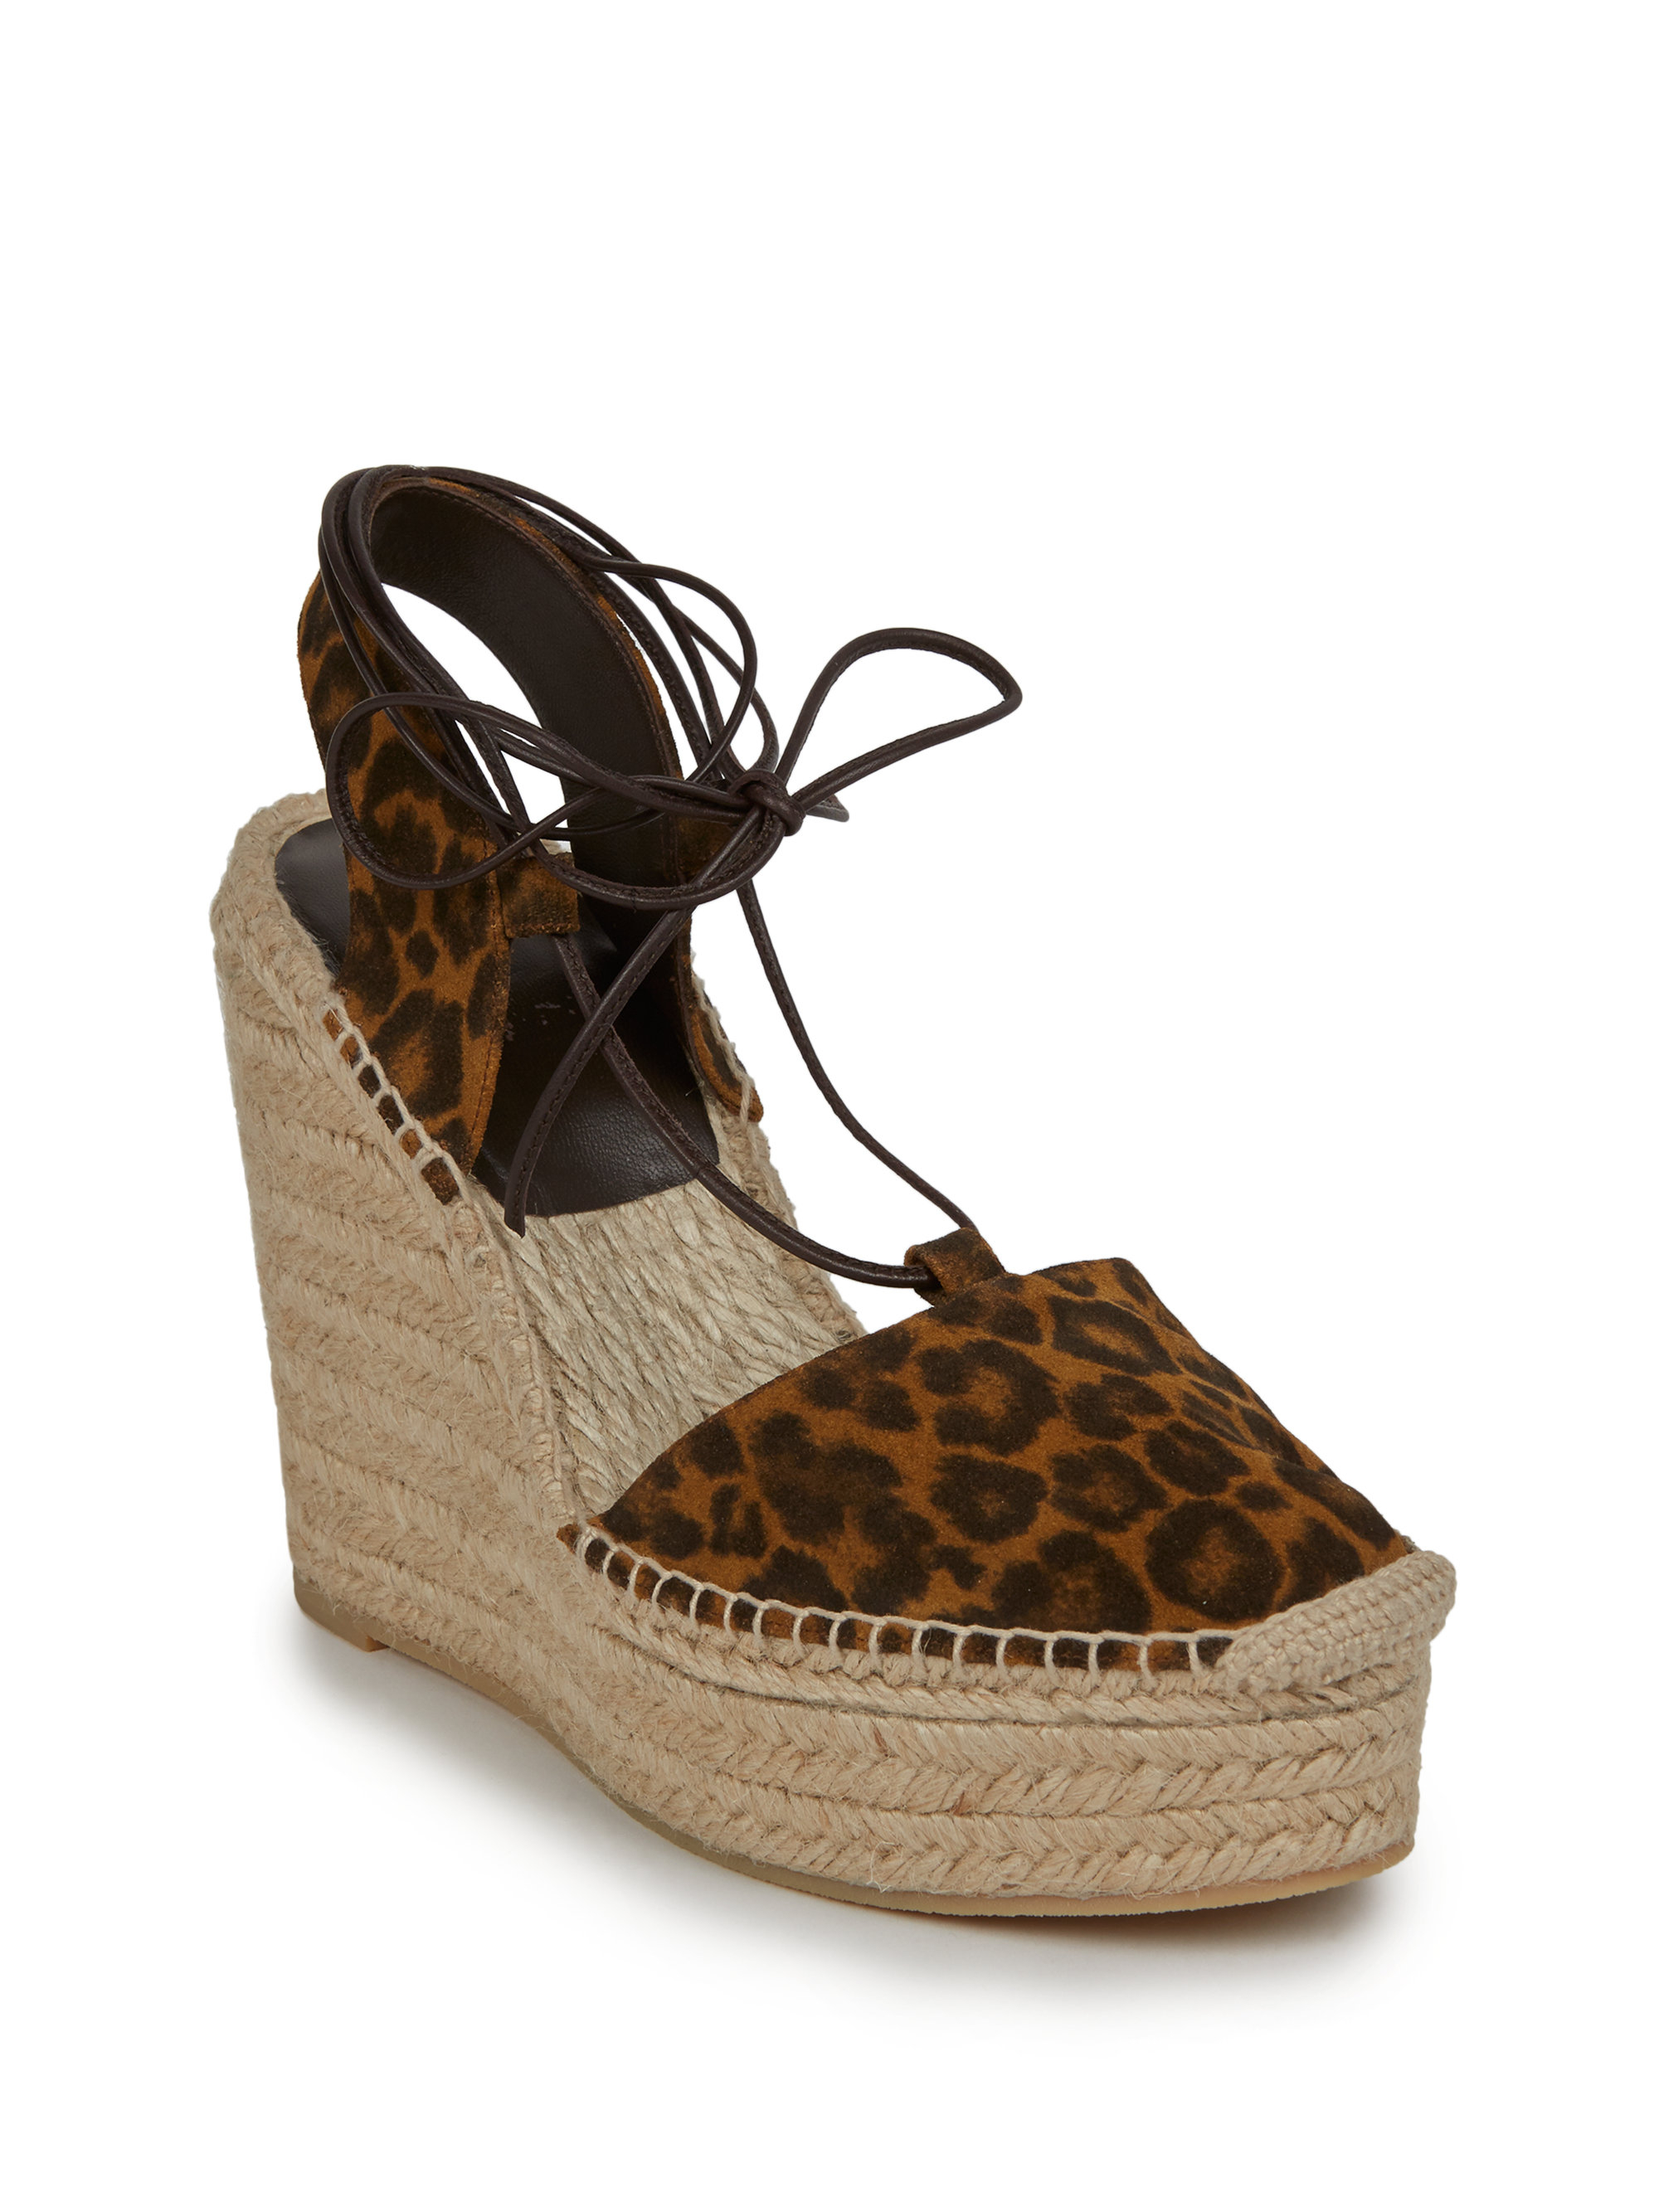 07c5cb06f3b3 Saint Laurent Espadrille Wedge Sandal